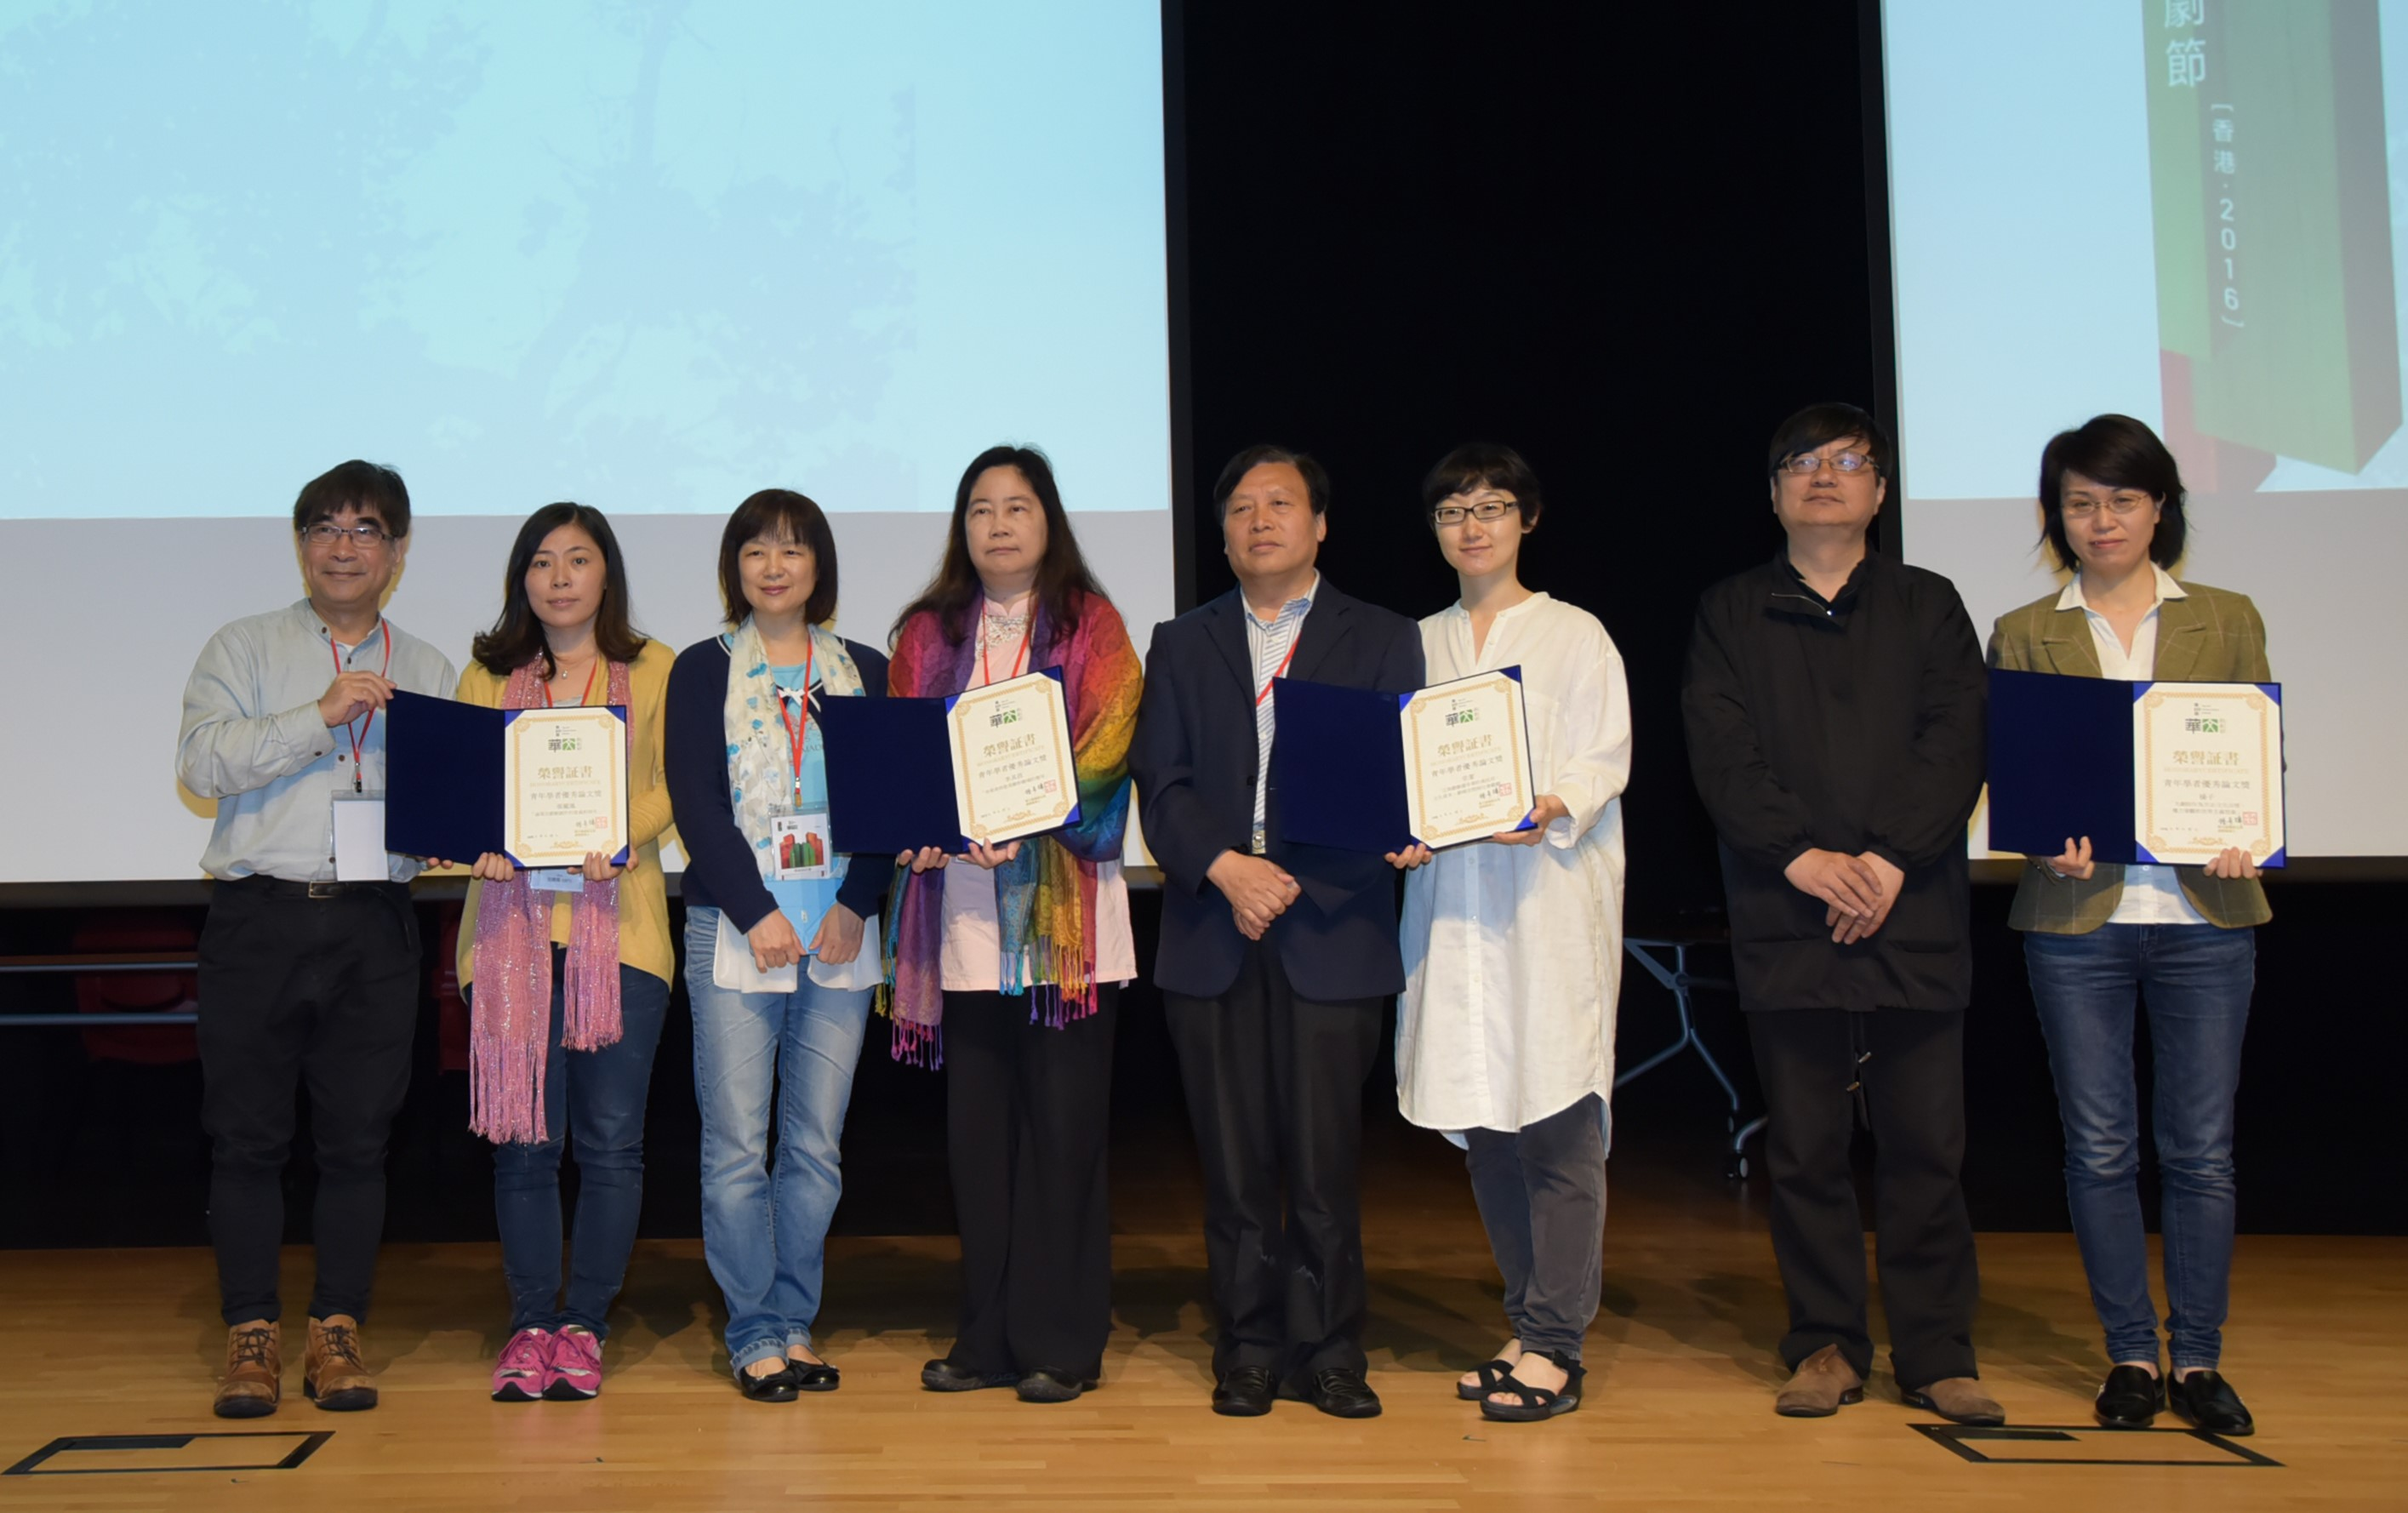 UM PhD student Zhang Lifeng (2nd from left) and Department of Chinese Language and Literature Head Zhu Shoutong (5th from left) at the Tenth Chinese Drama Festival